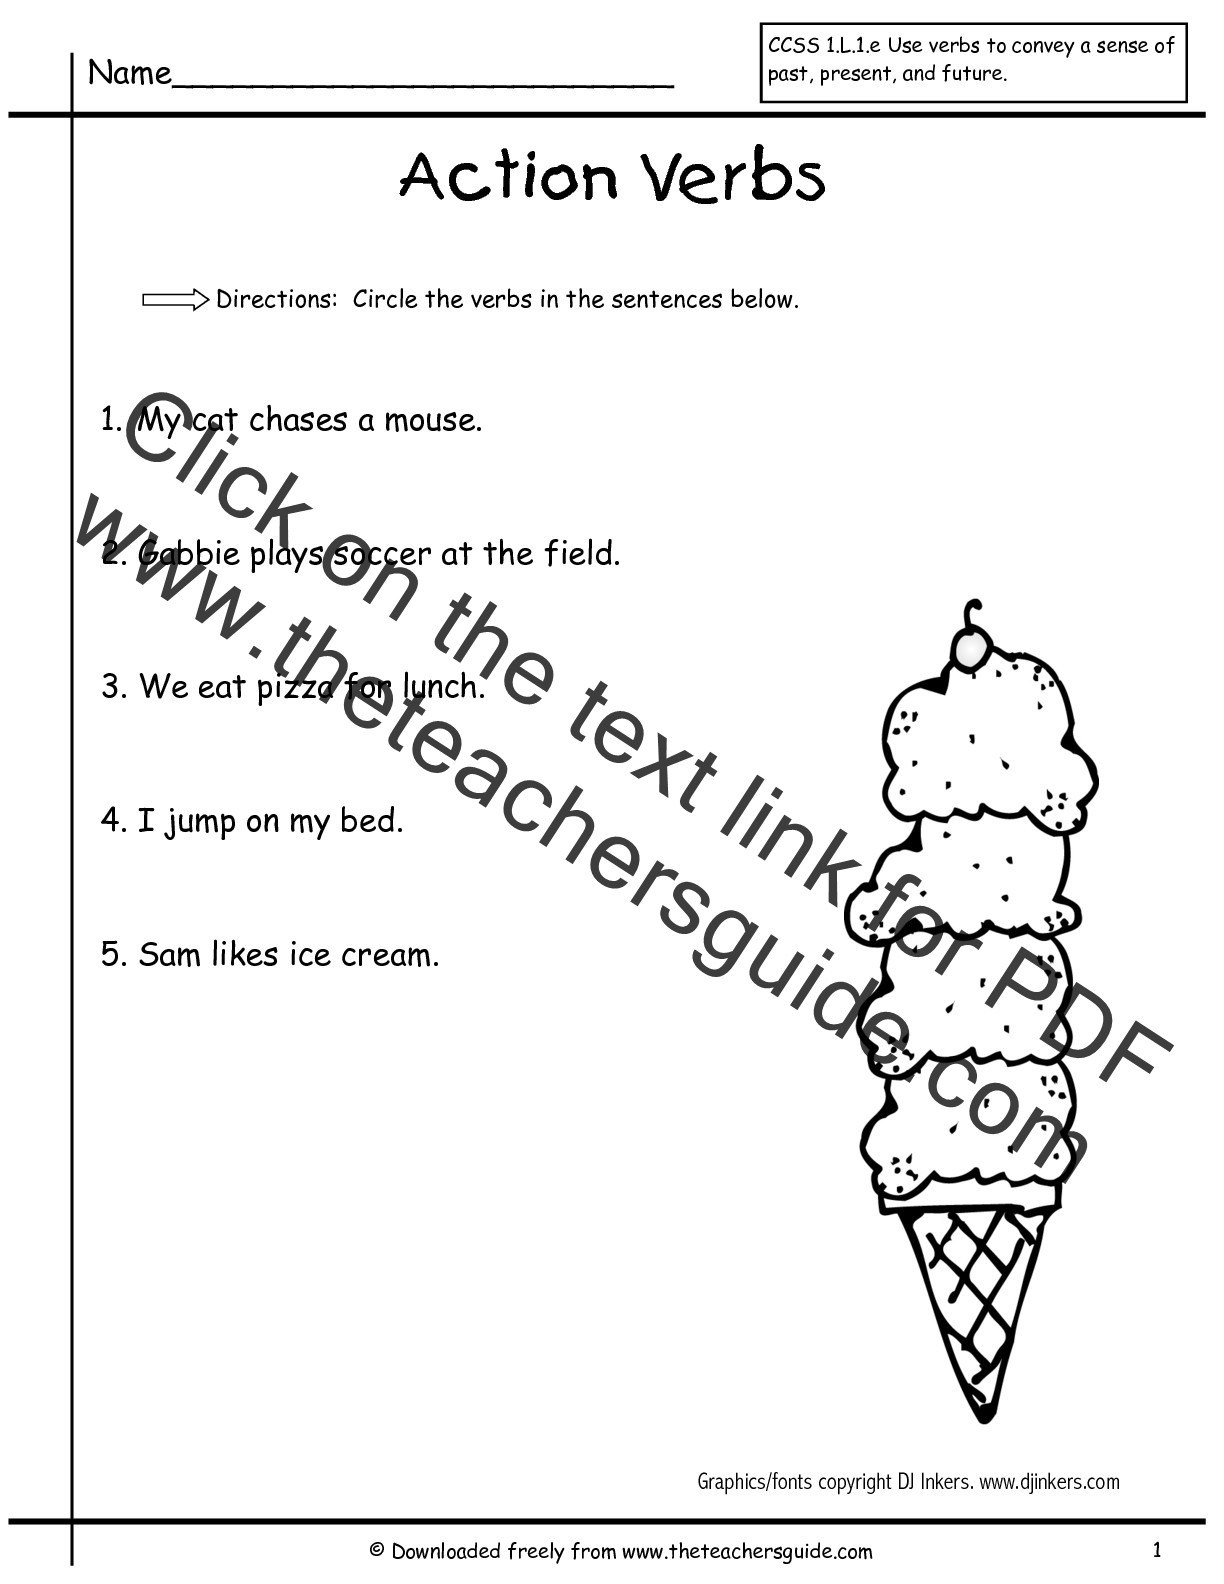 New 633 First Grade Worksheets For Verbs